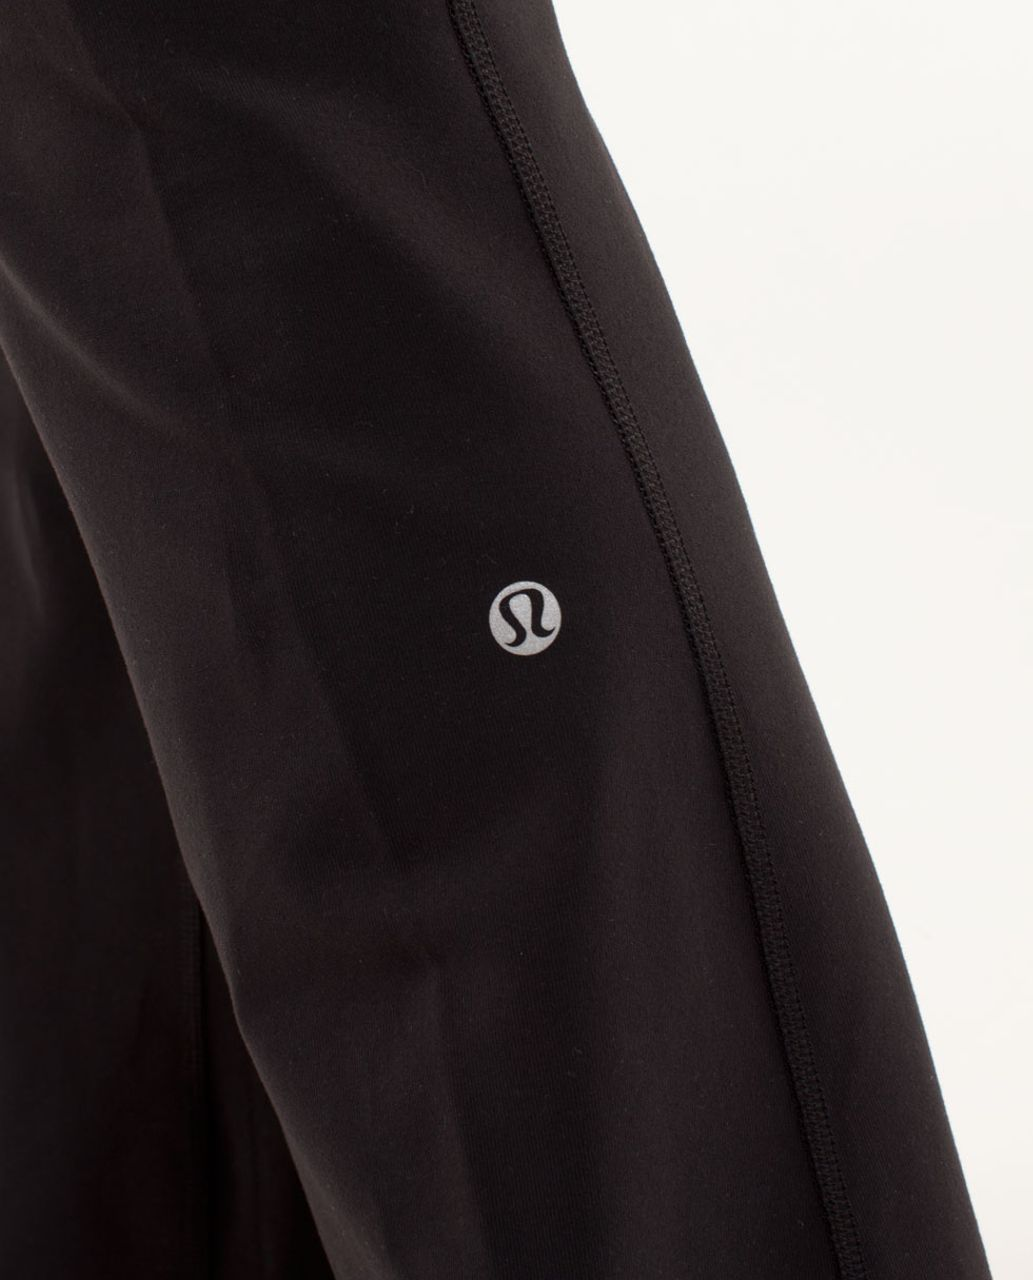 Lululemon Groove Pant *New (Regular) - Black / Quilting Winter 11